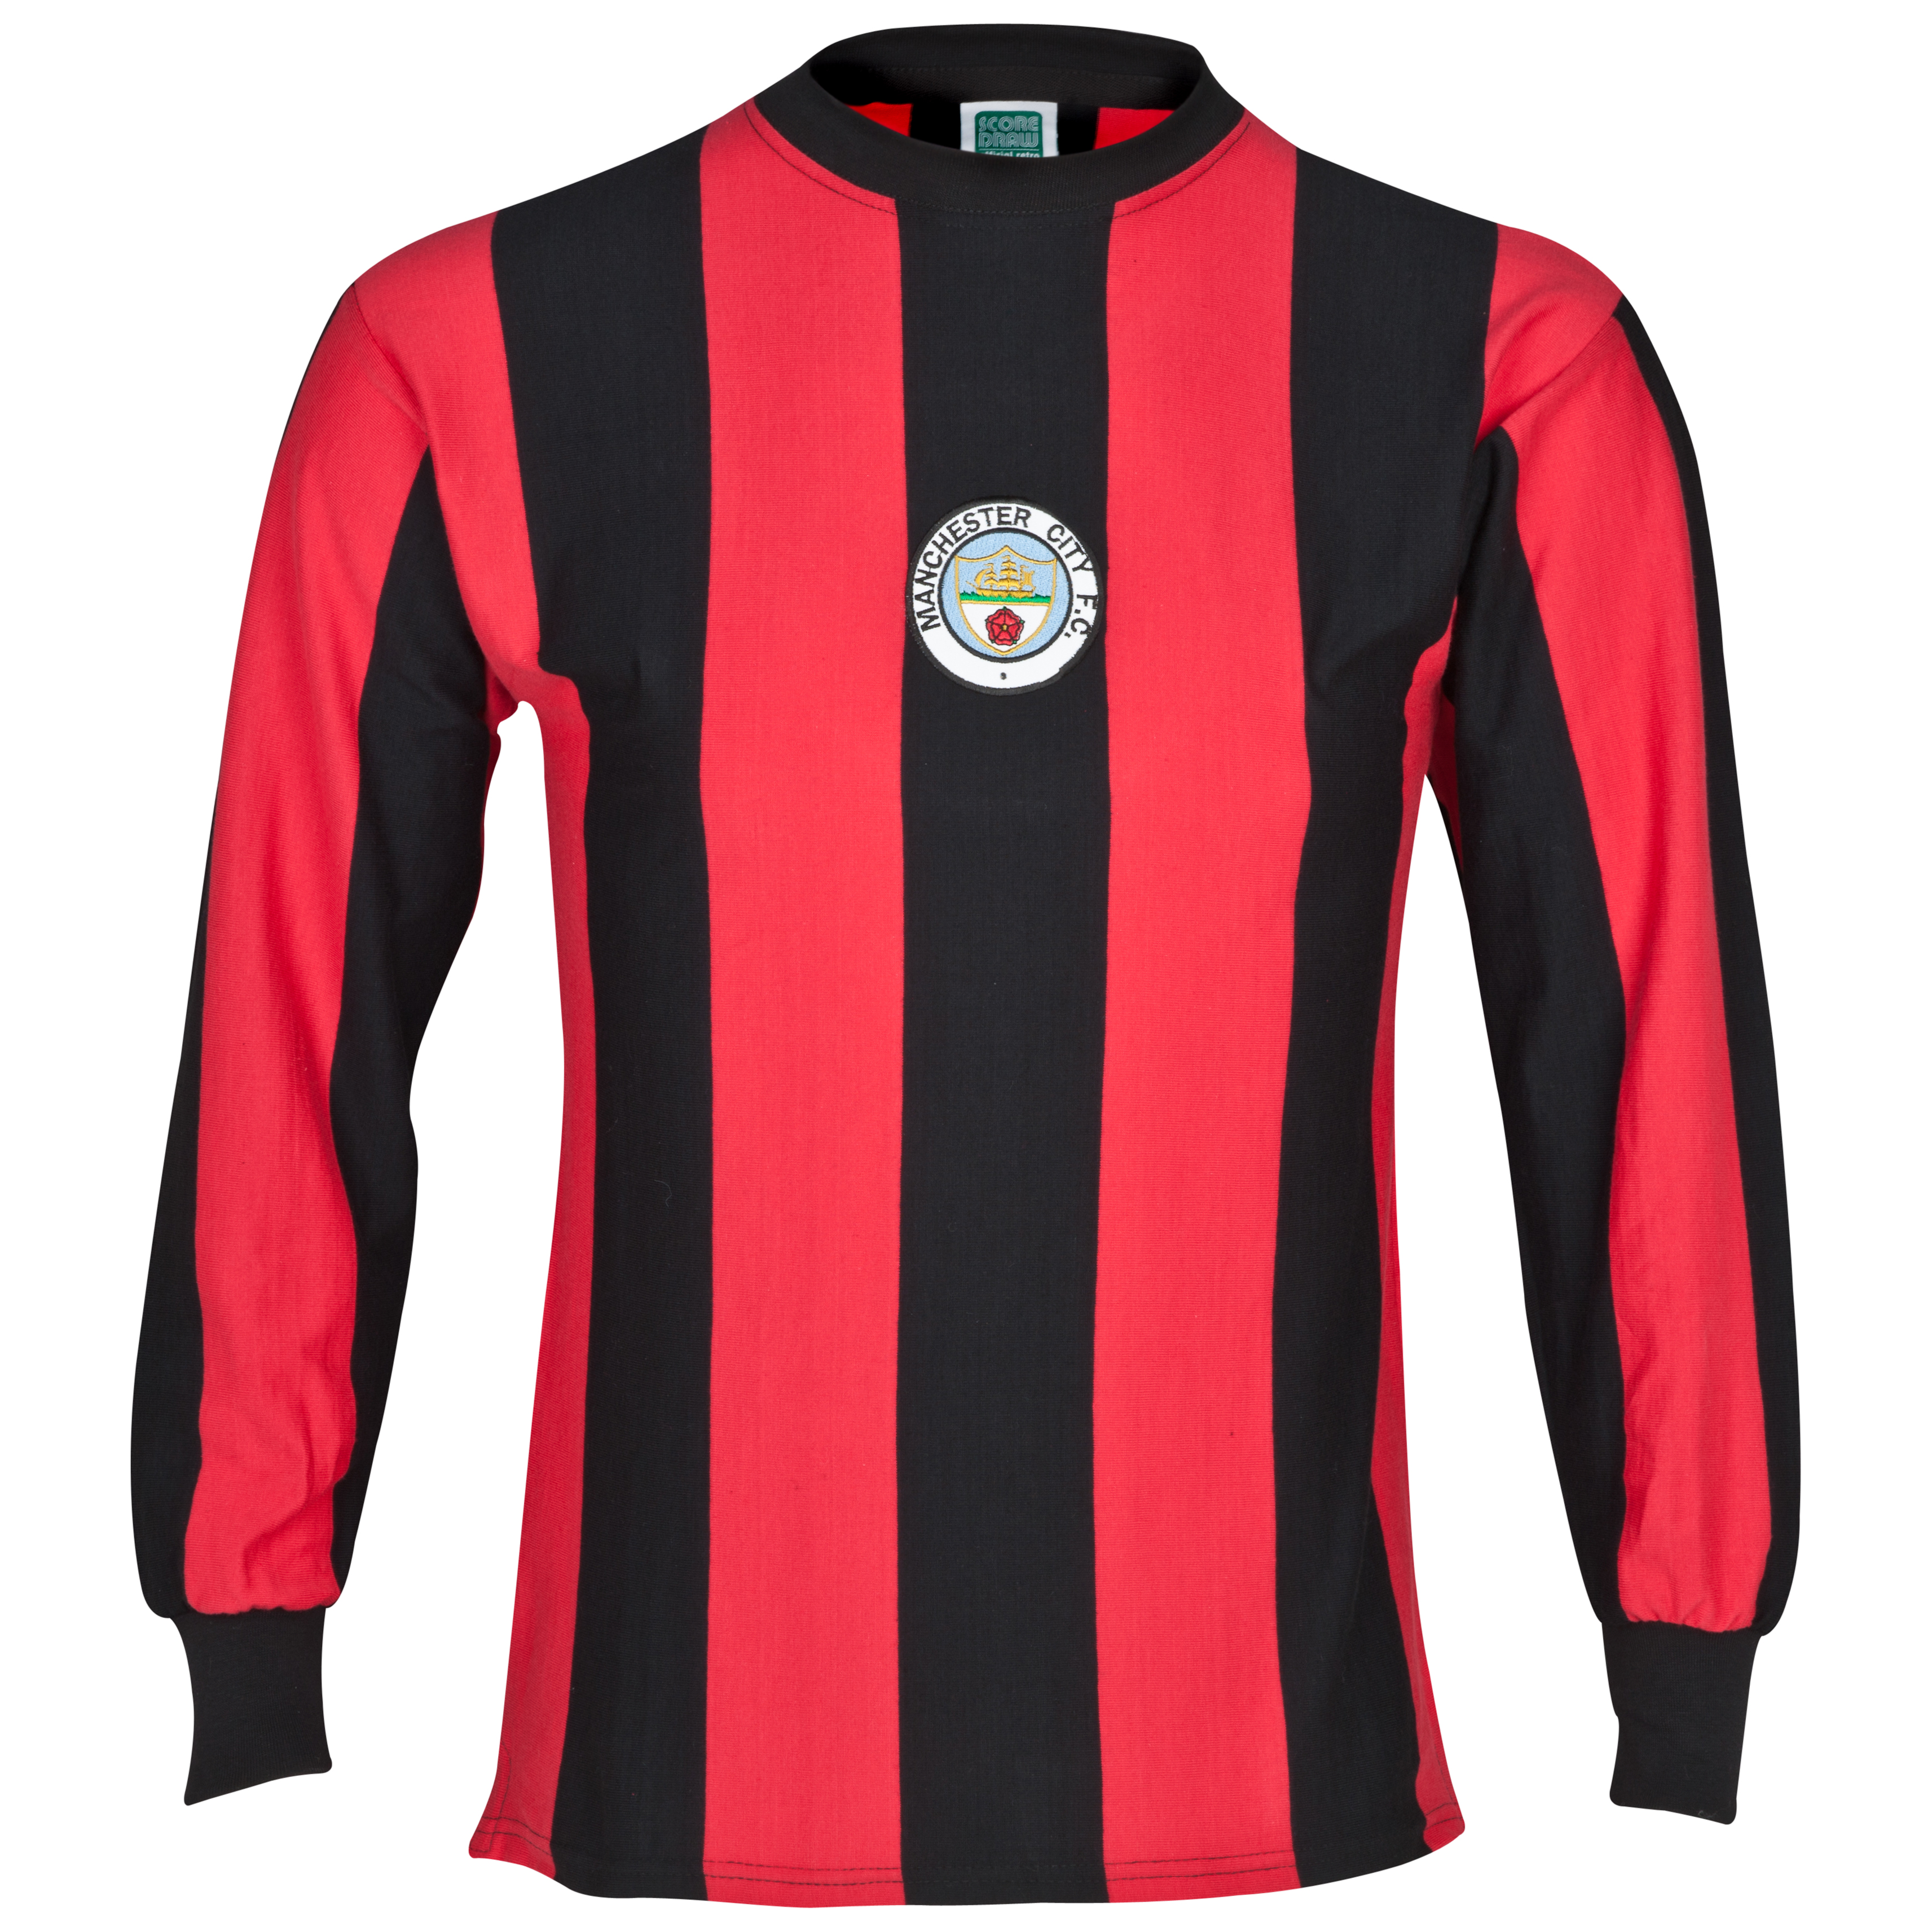 Manchester City 1972 Away LS shirt